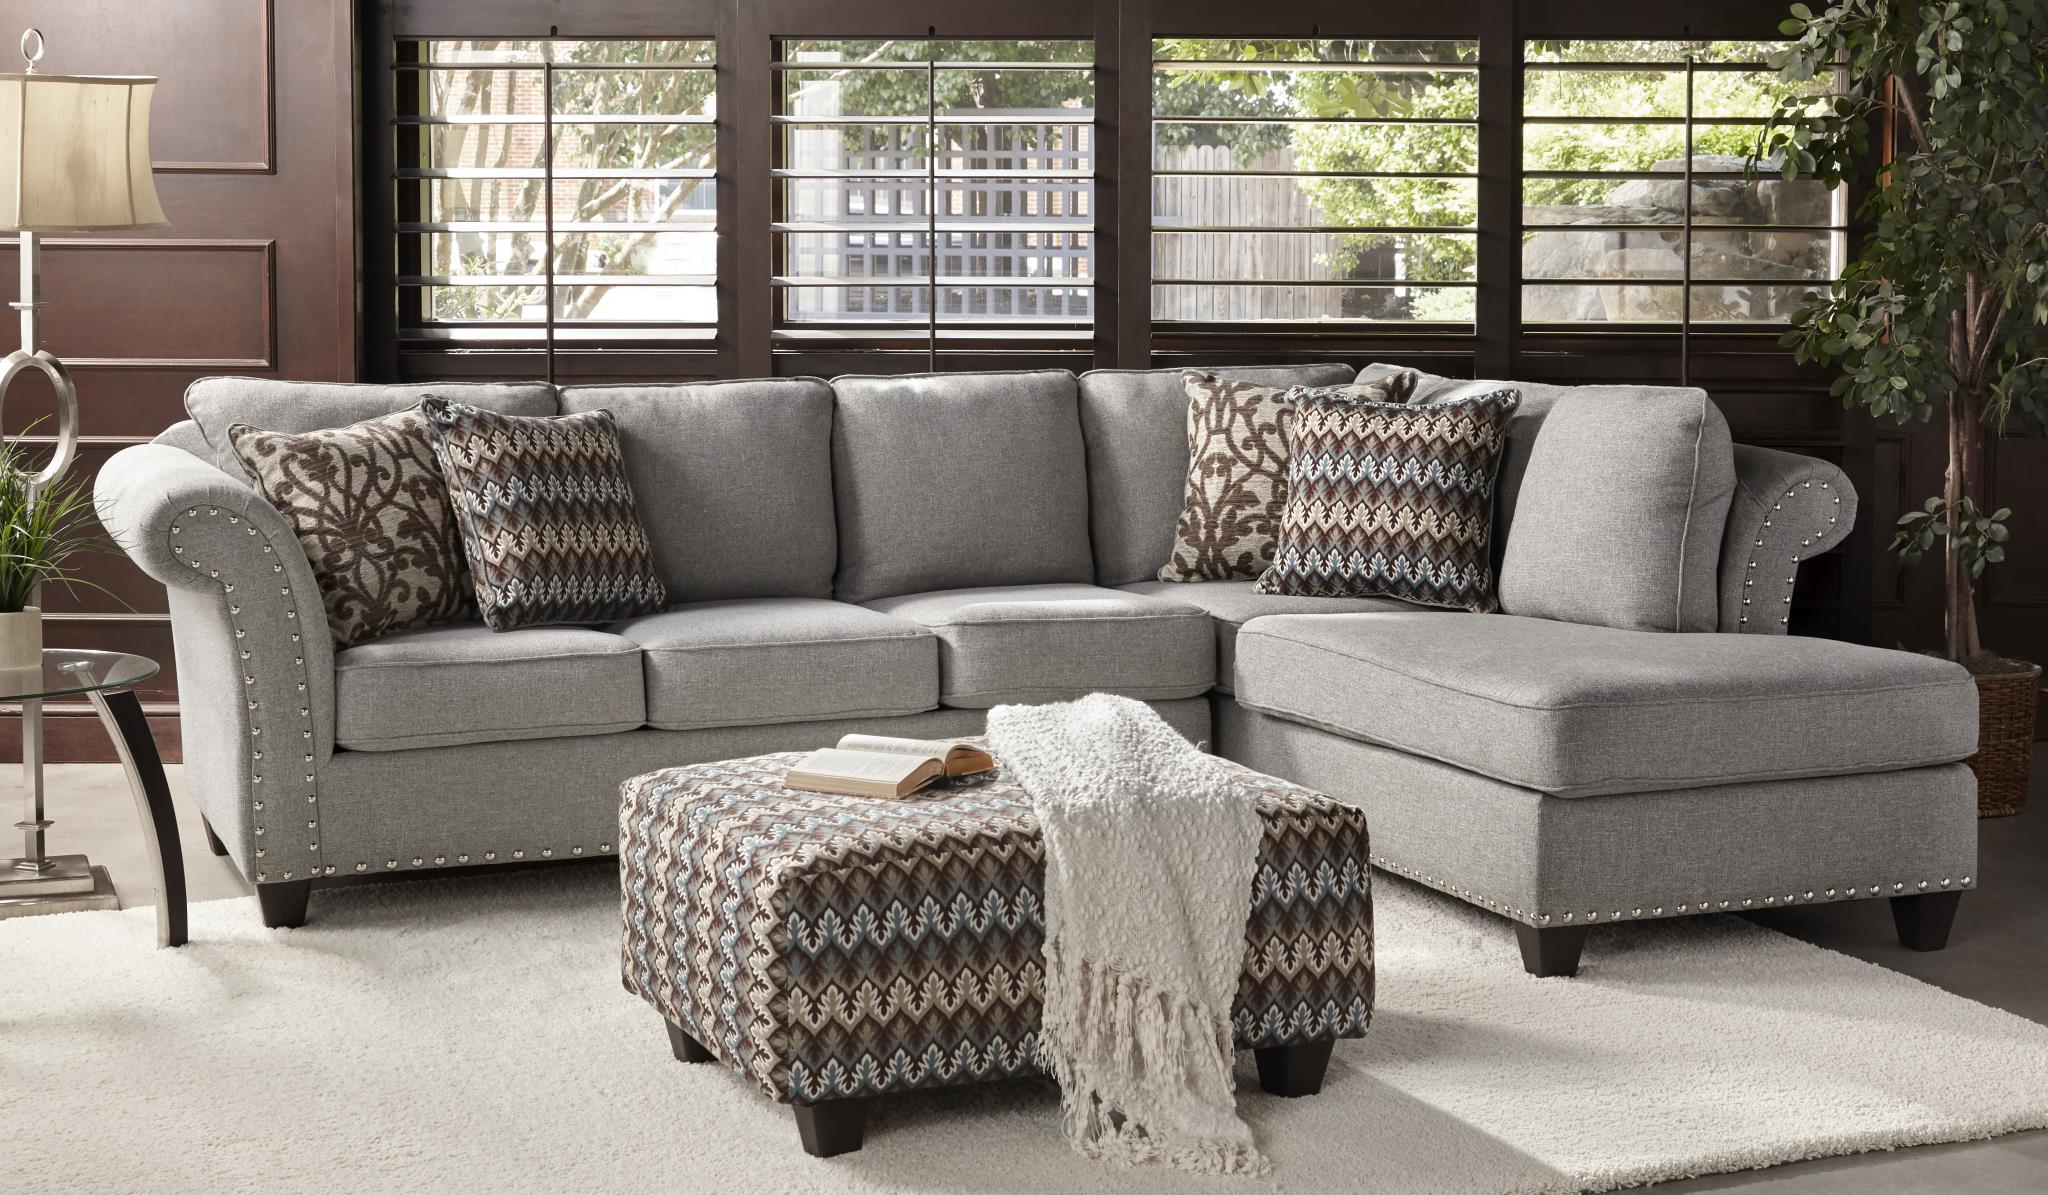 Gray and Silver Chaise Sofa